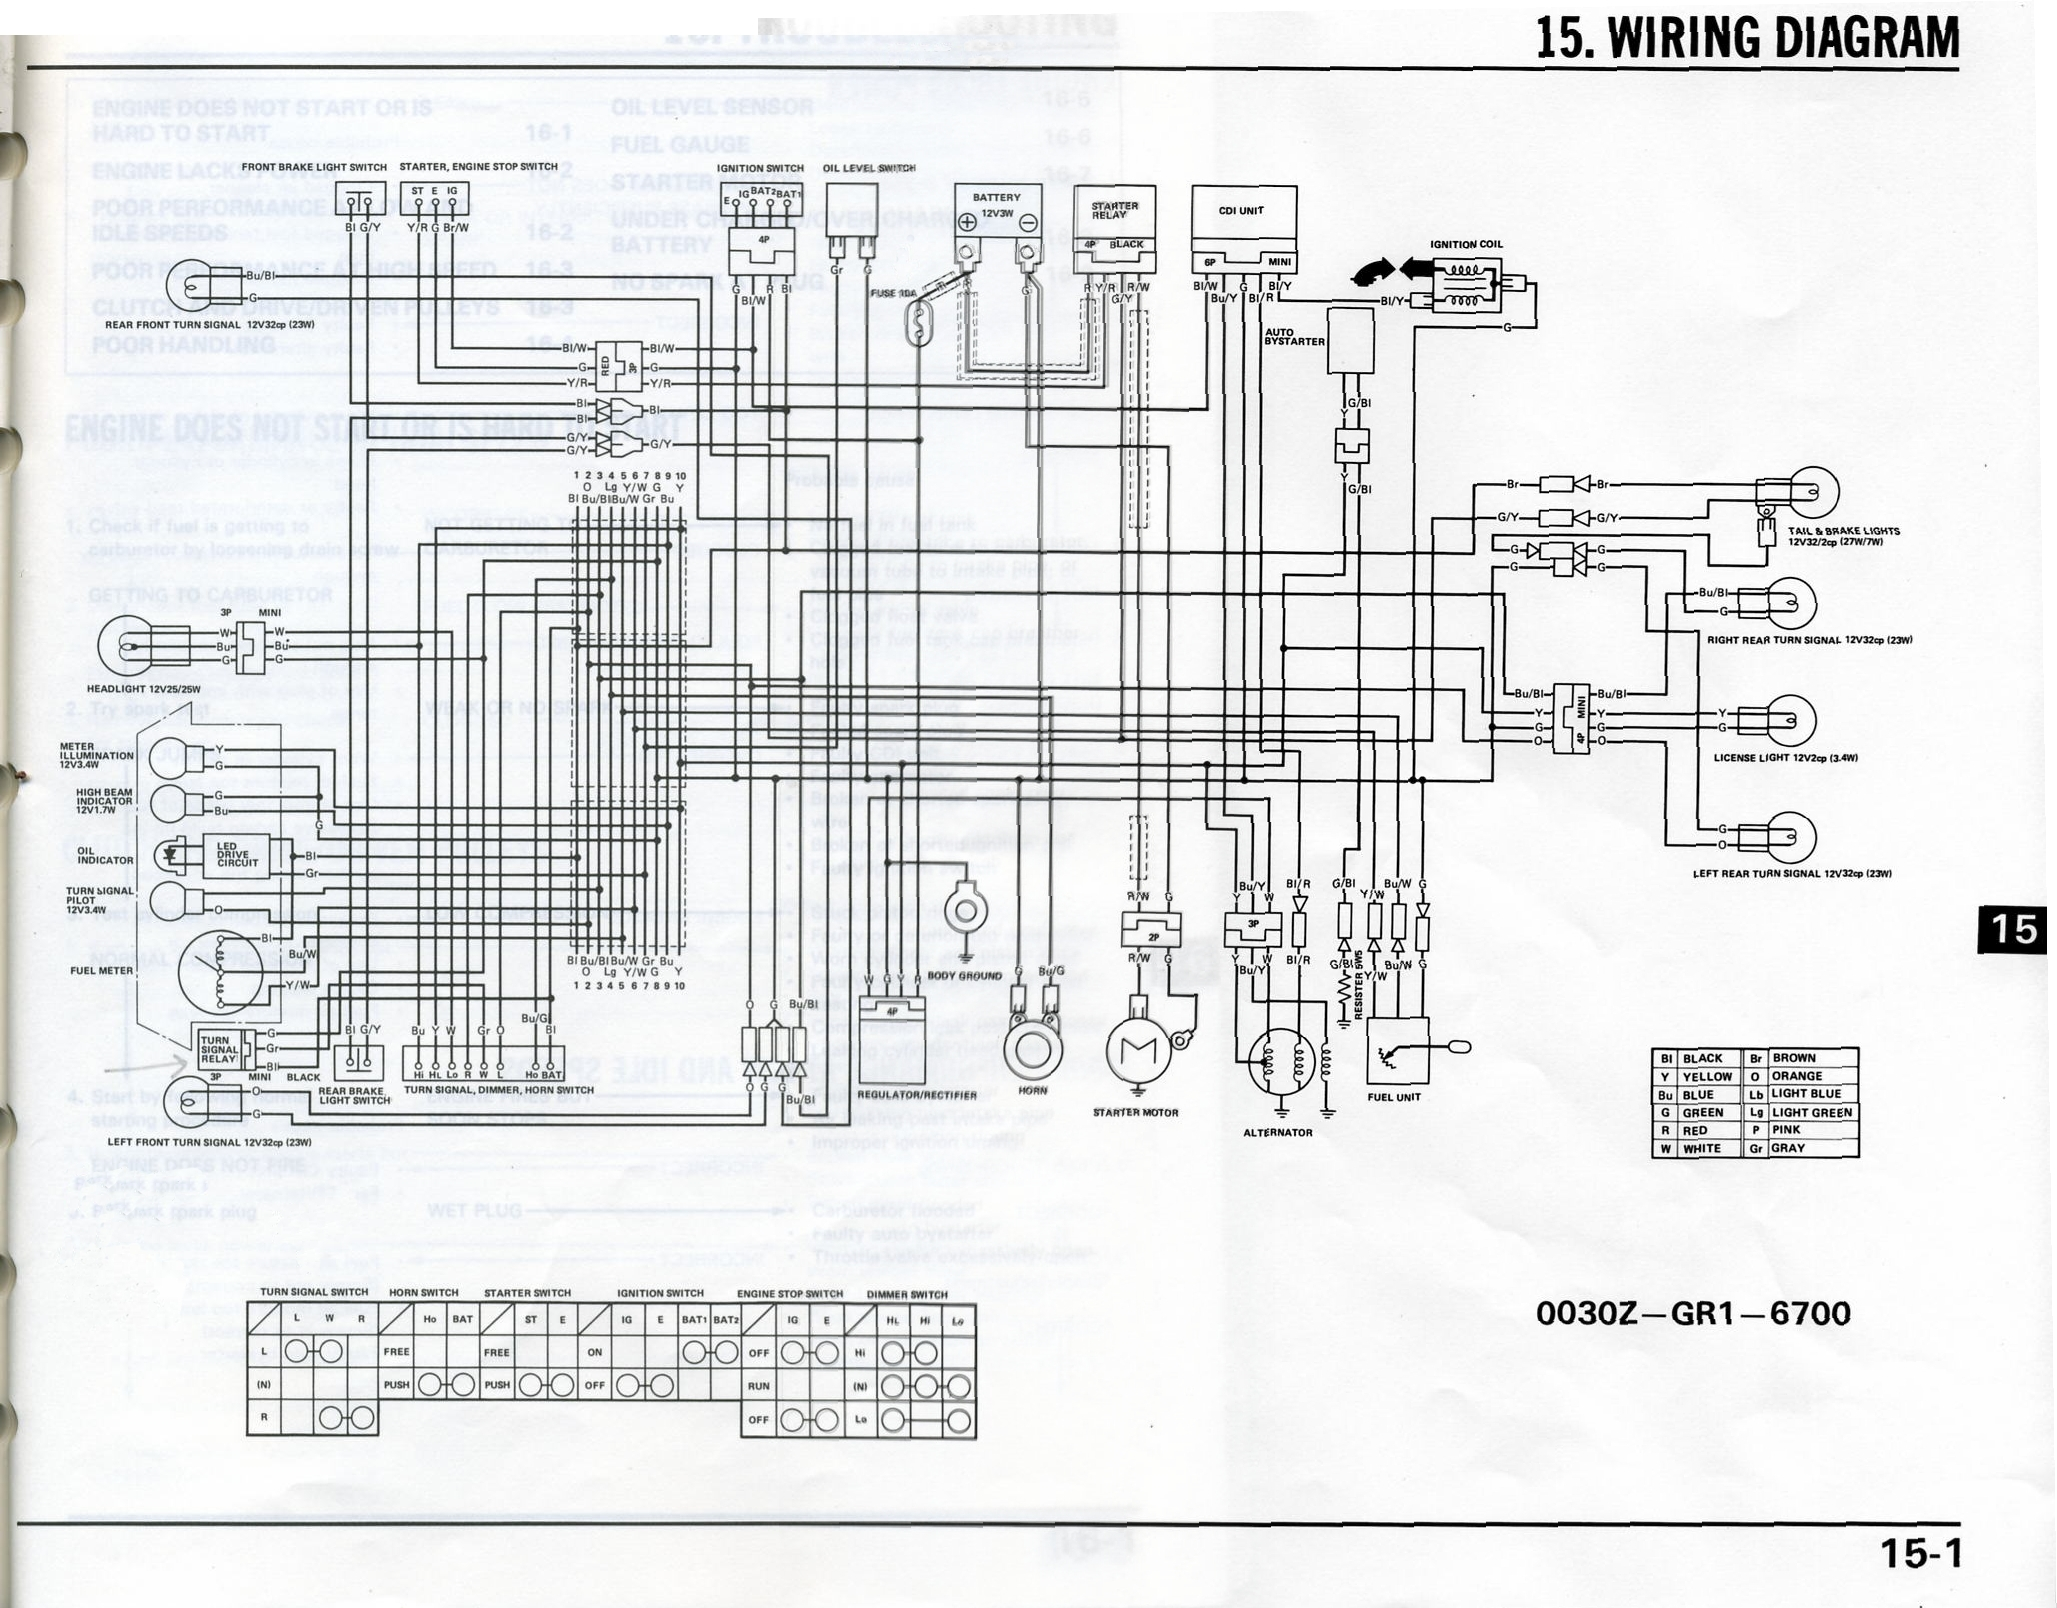 SE50_1987_Wire_Diagram honda 3813 wiring diagram wiring diagram shrutiradio honda 3813 wiring diagram at fashall.co